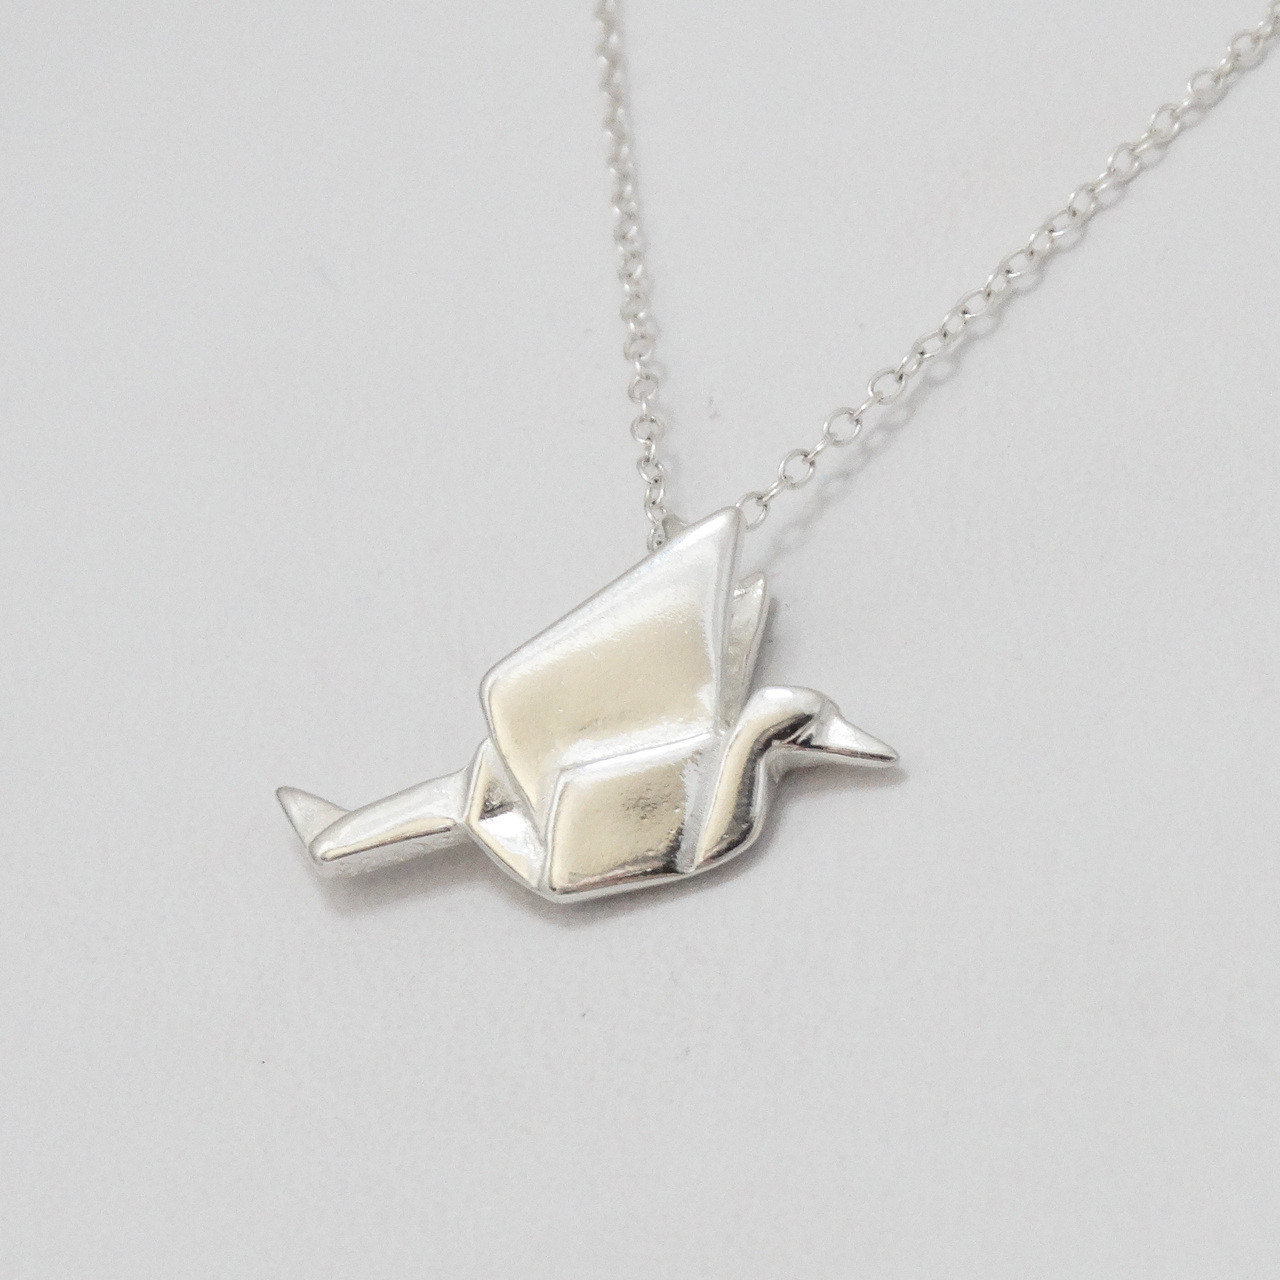 Sterling Silver Origami Crane Charm Necklace - photo#42